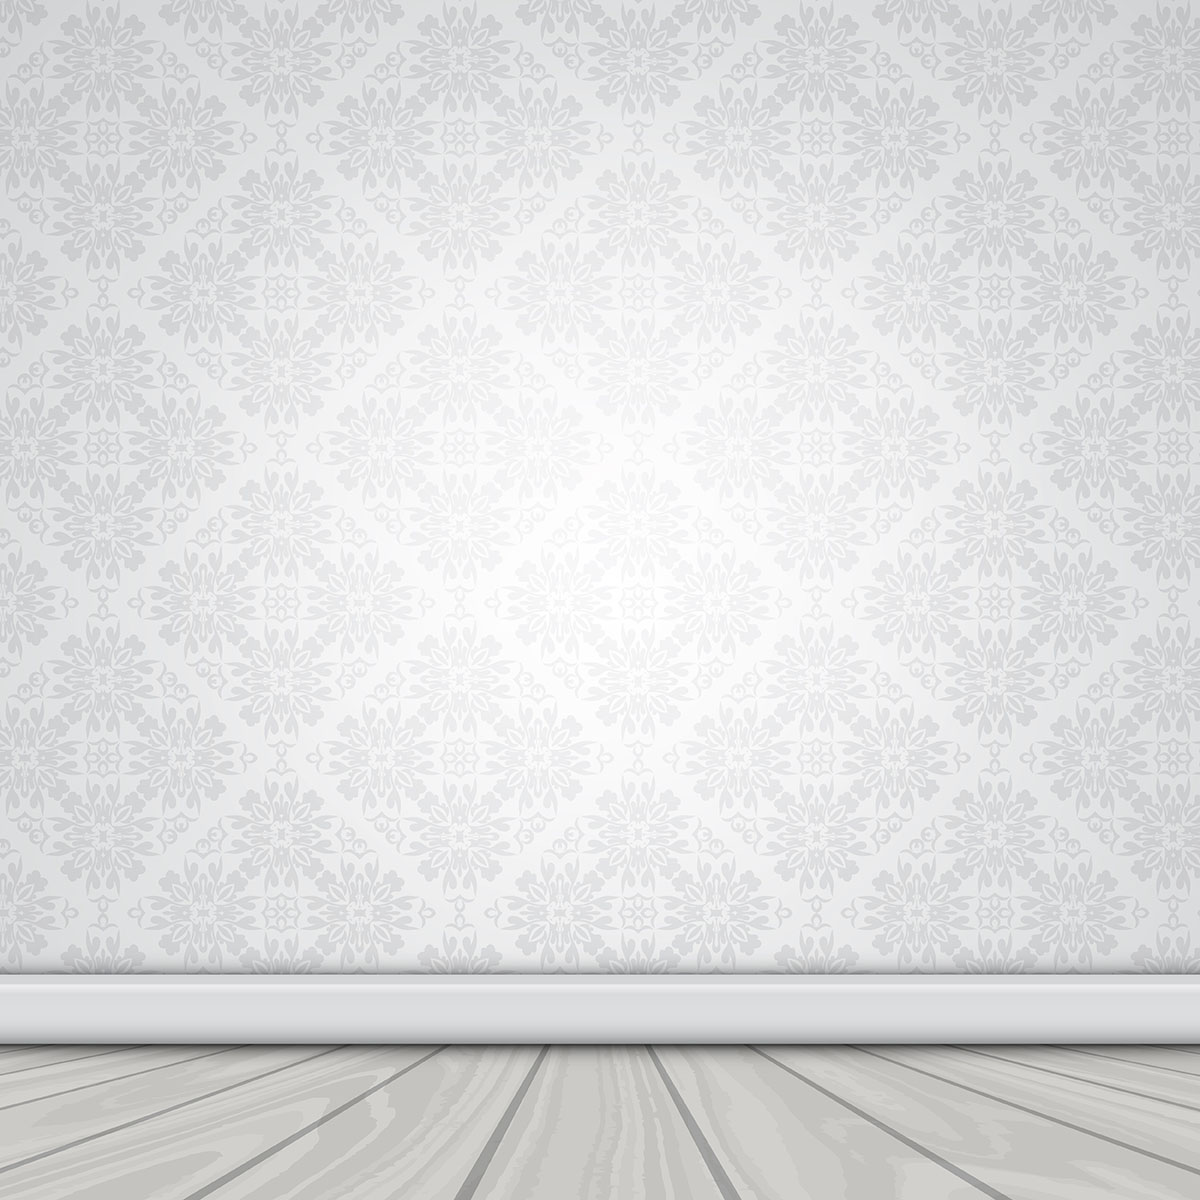 Blank Interior With Wallpaper And Wood Floor Download Free